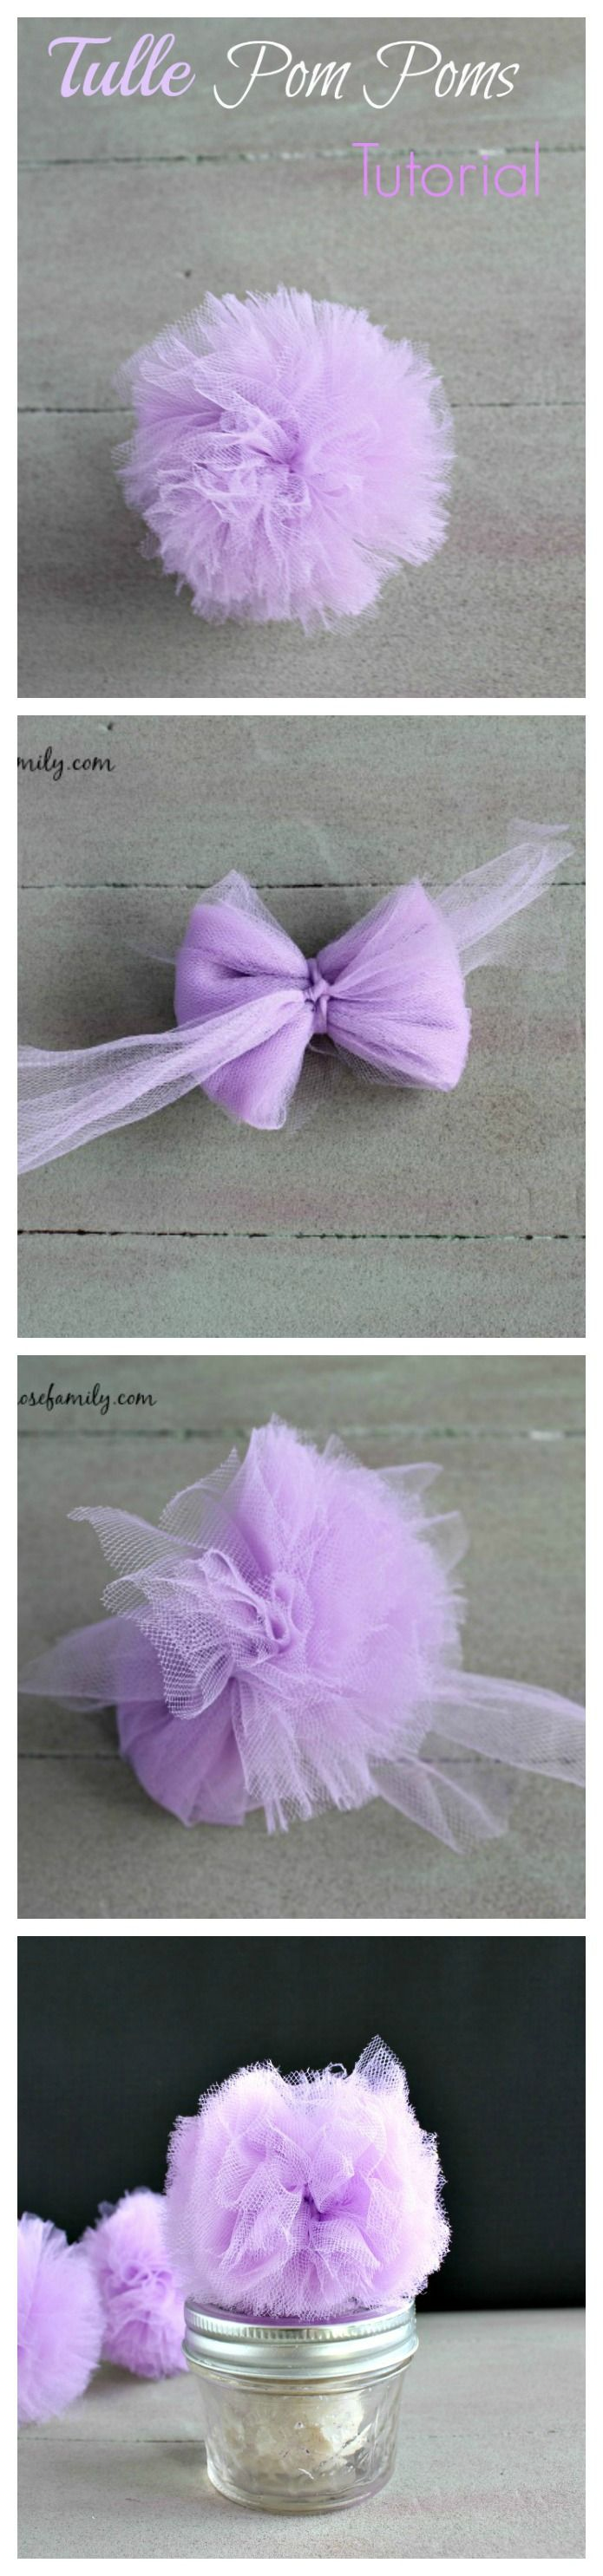 Tulle Pom Pom Tutorial for decorations! Love it!